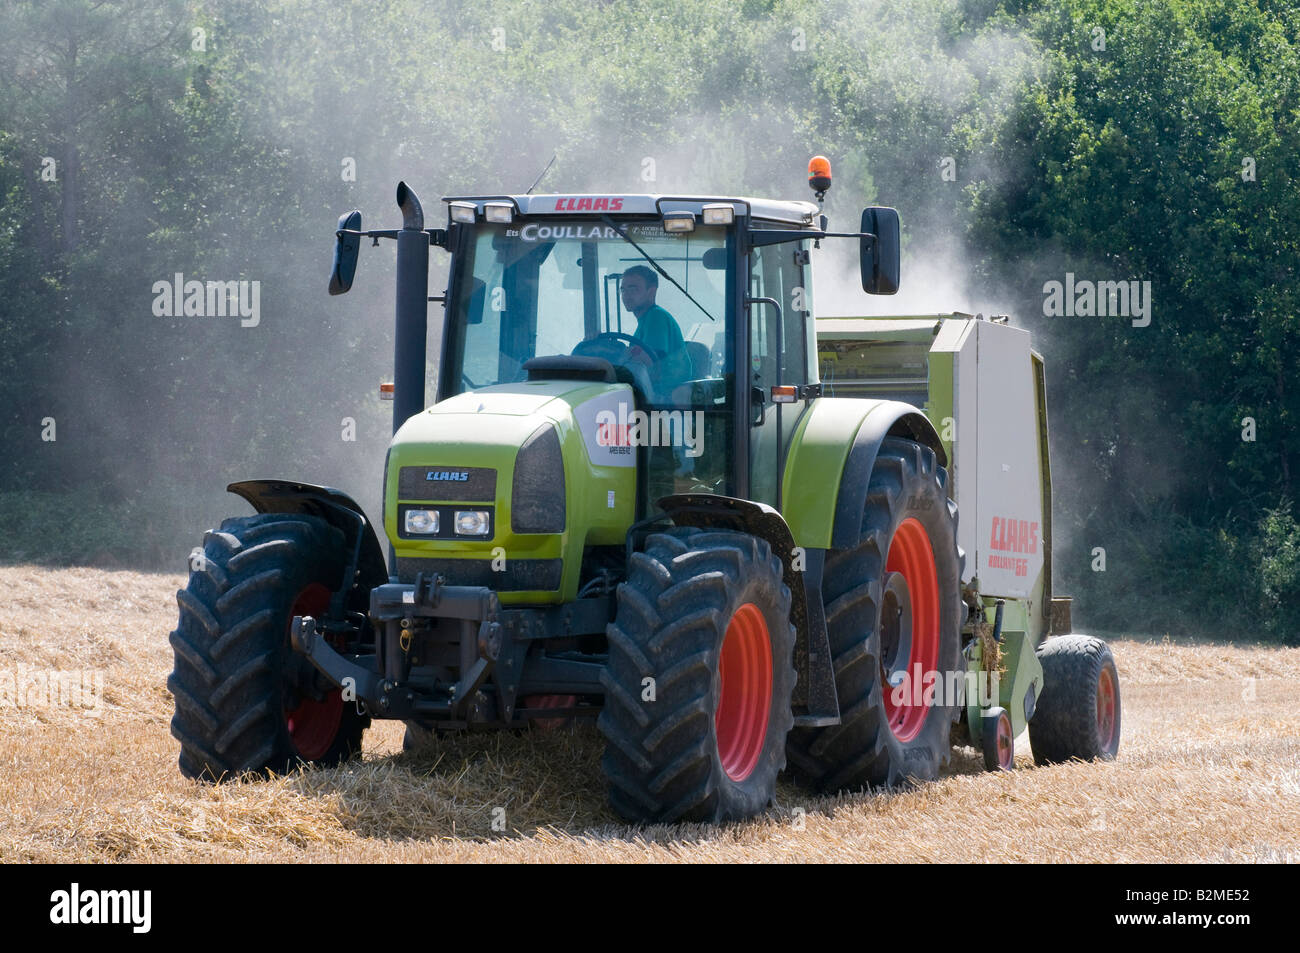 claas rollant 66 stock photos claas rollant 66 stock images alamy rh alamy com Claas Baler Hydraulic 250 Gauge Claas Baler Hydraulic 250 Gauge